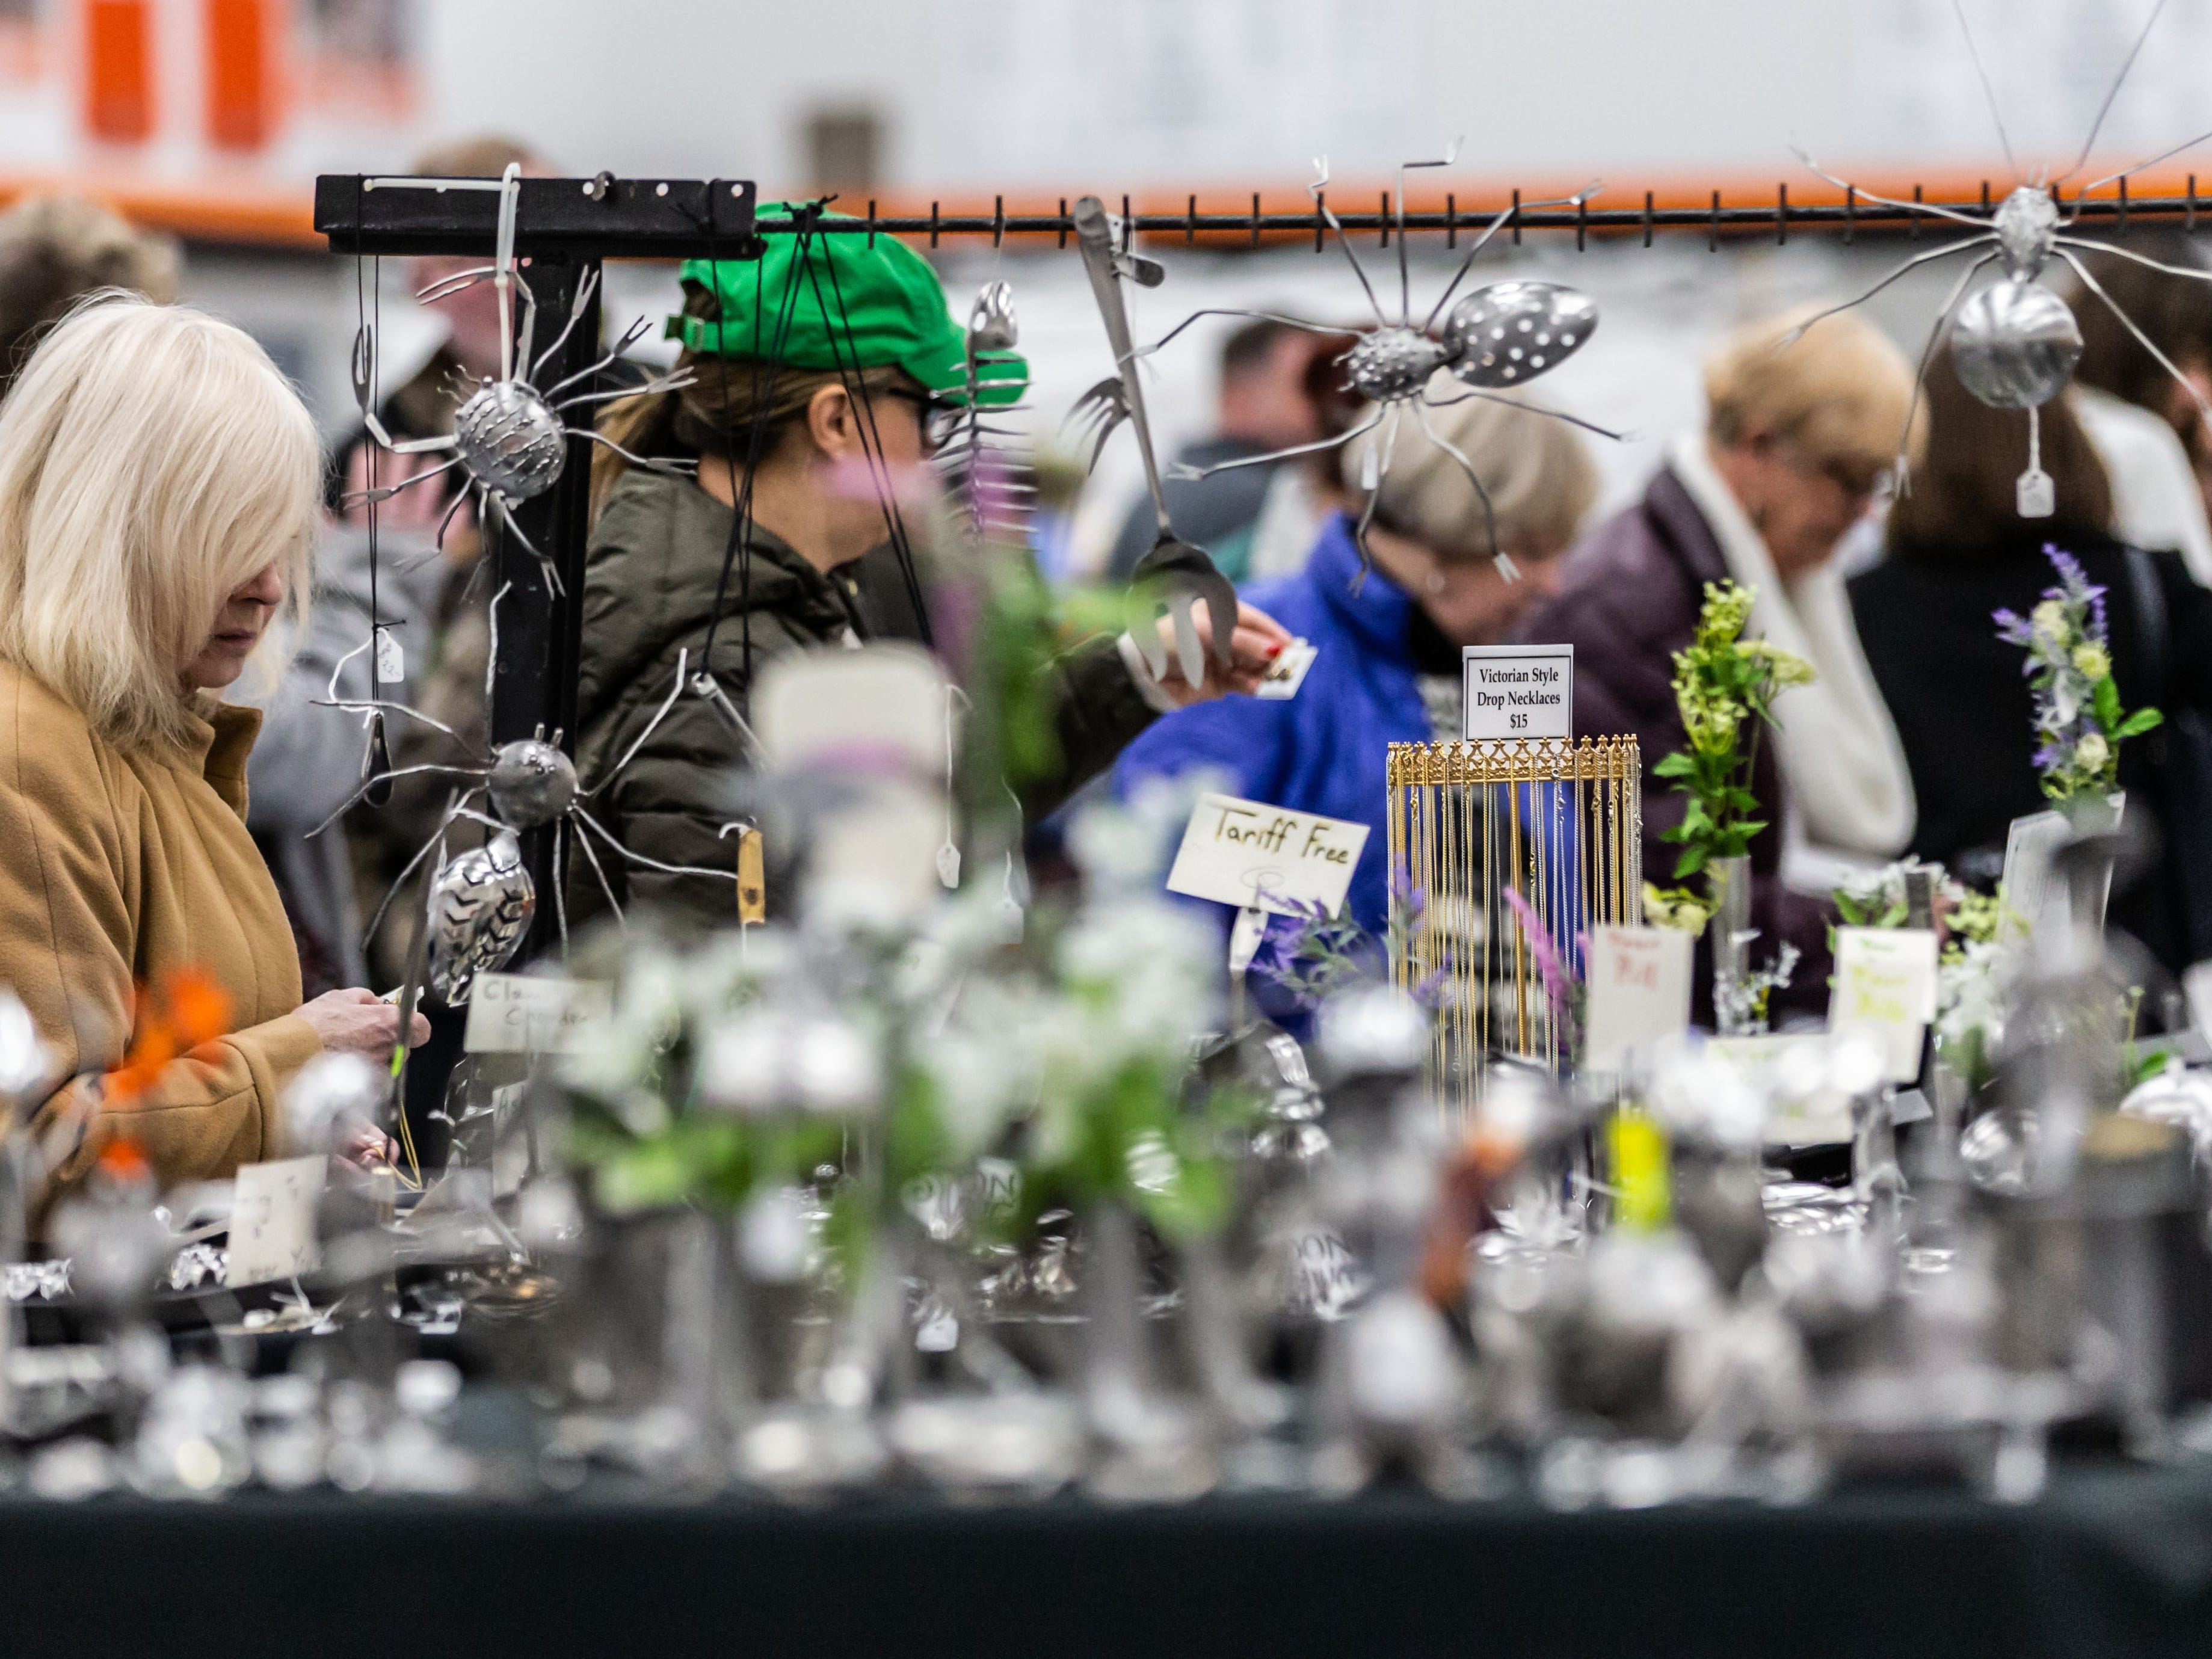 Attendees browse a variety of handcrafted offerings during the 7th annual Art in the Burg art fair at Cedarburg High School (CHS) on Saturday, March 9, 2019. The event, sponsored by the CHS Fine Arts Boosters and Art Department, features 75 artists from the midwest exhibiting and selling original work in many artistic disciplines.